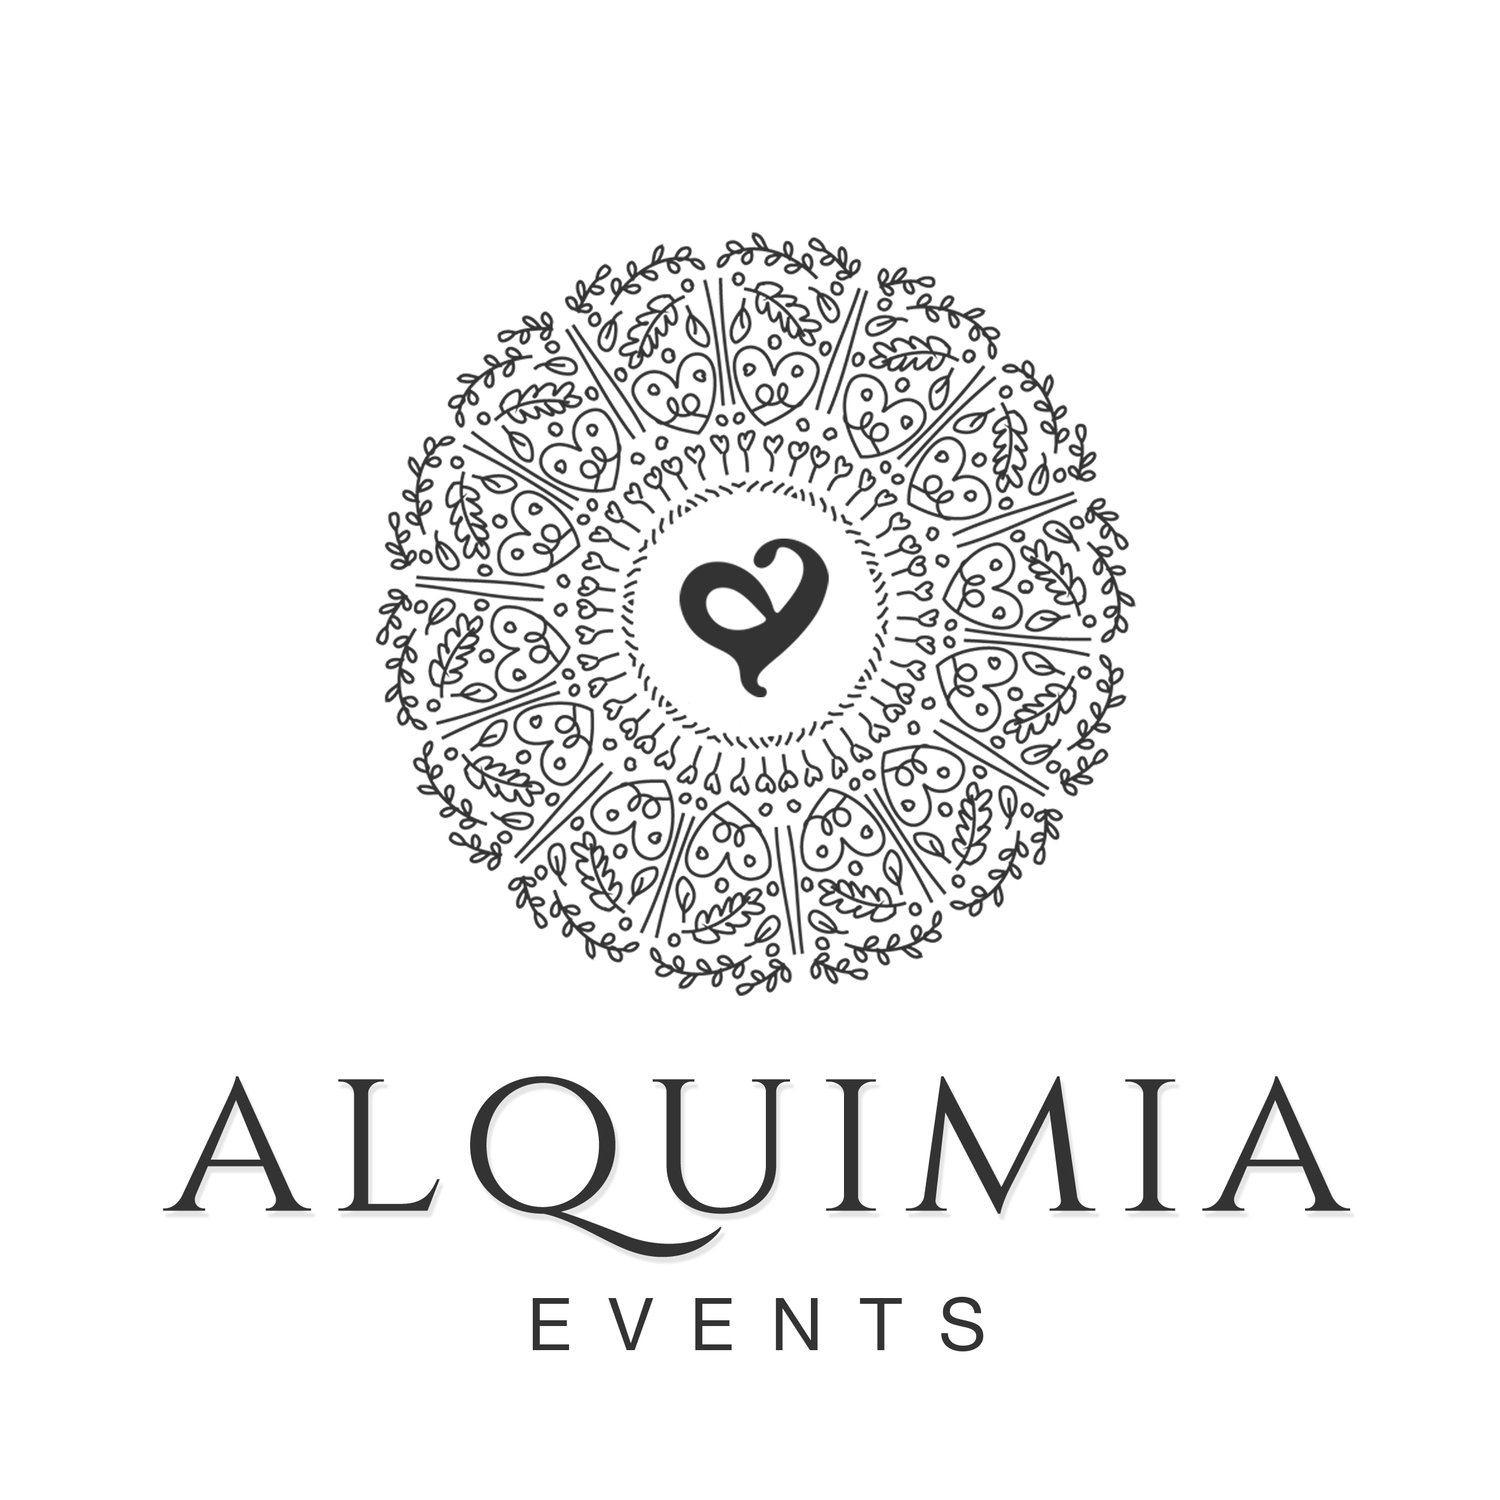 Alquimia Events